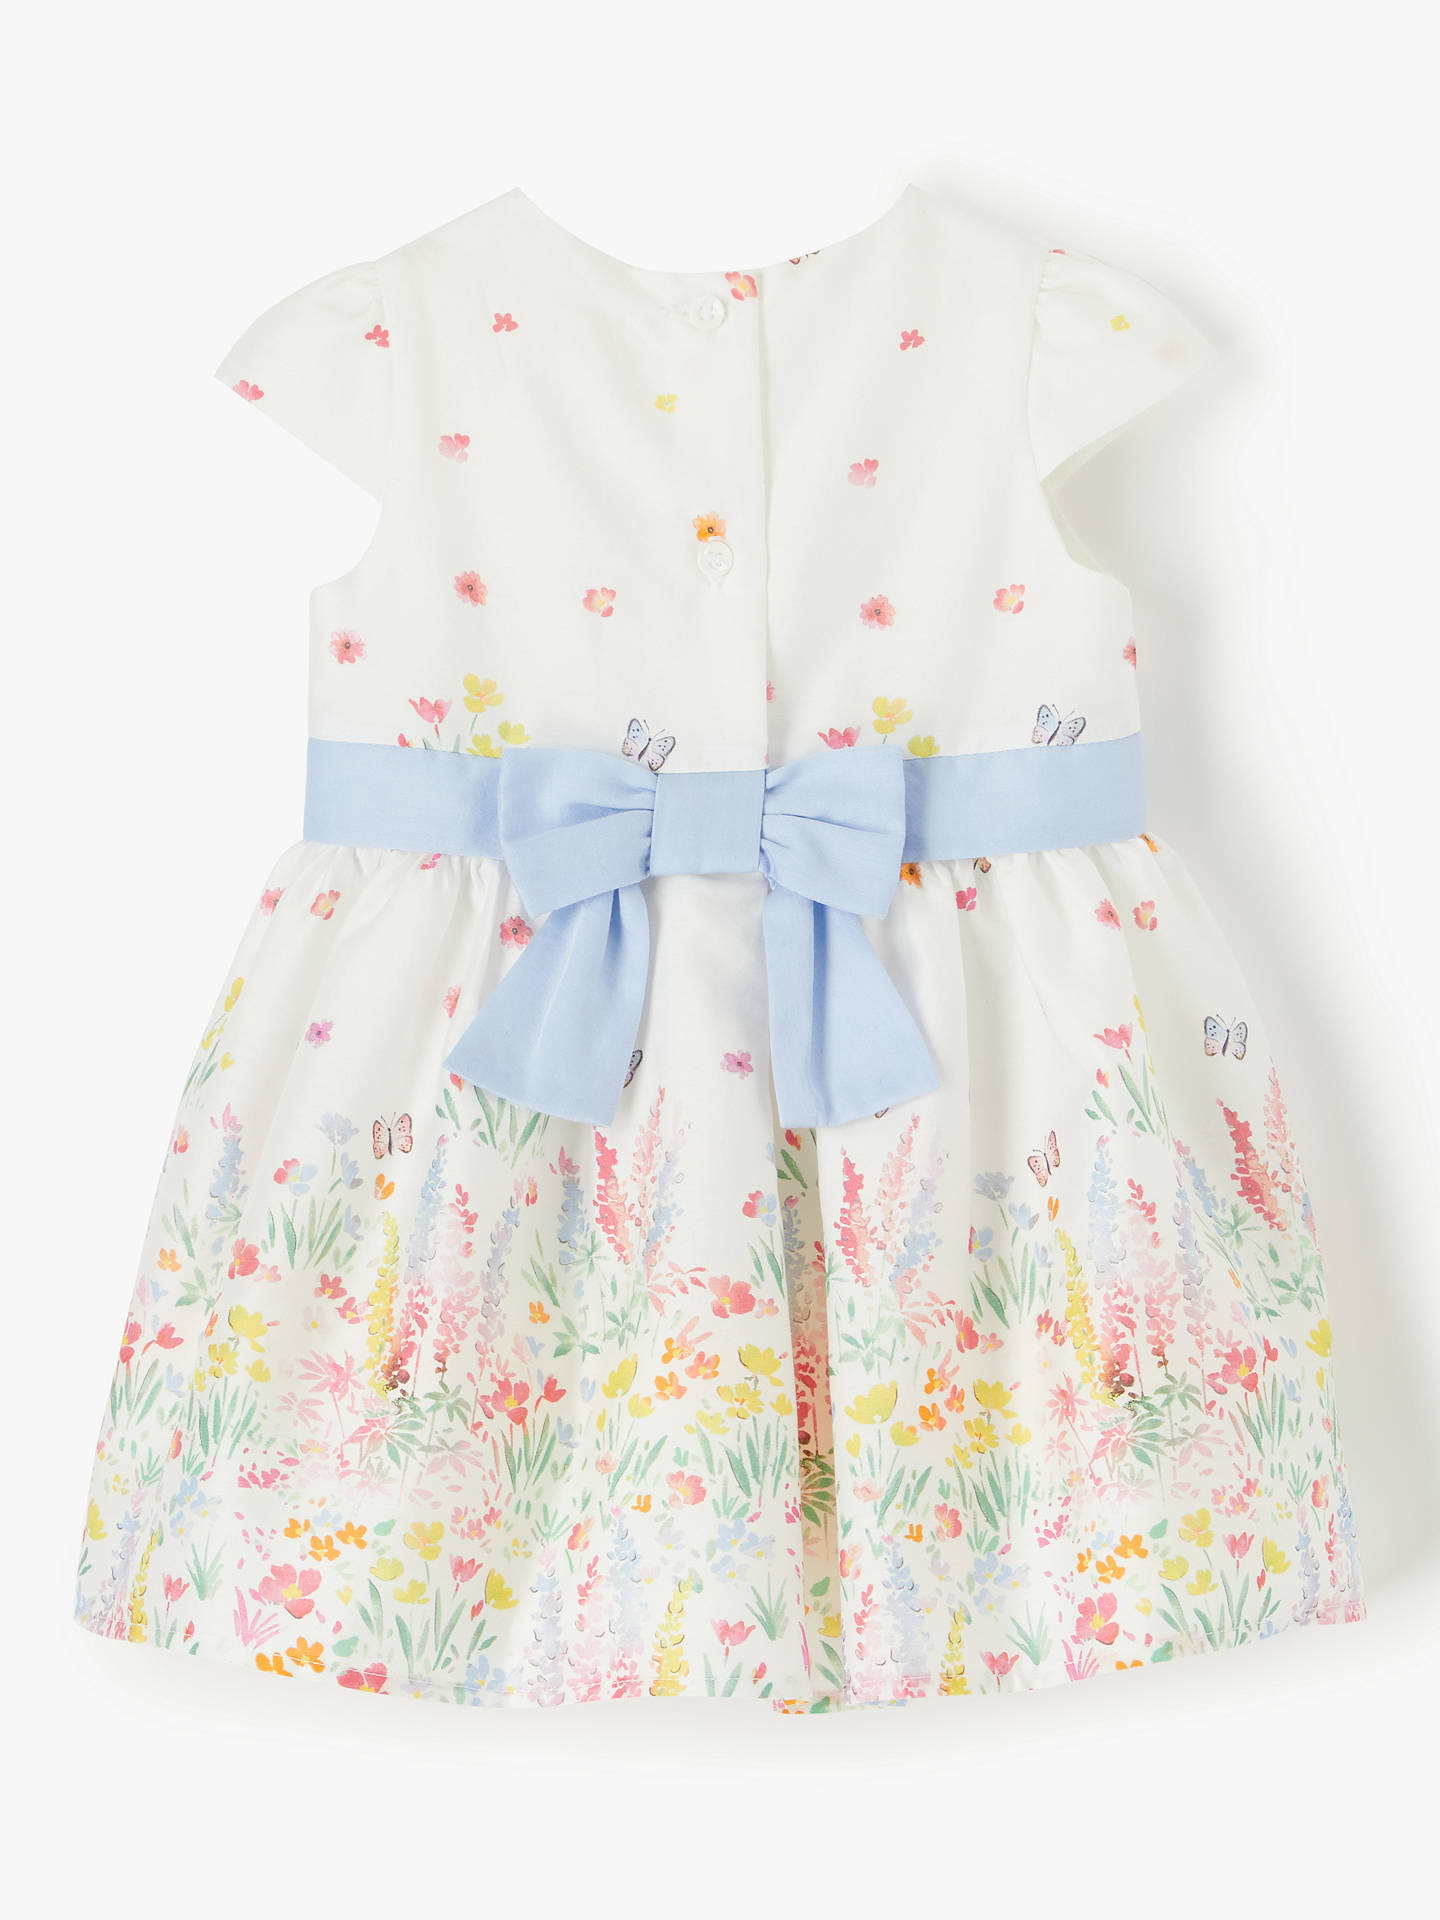 ade843ac3 ... Buy John Lewis & Partners Baby Floral Dress, White, 6-9 months Online  ...